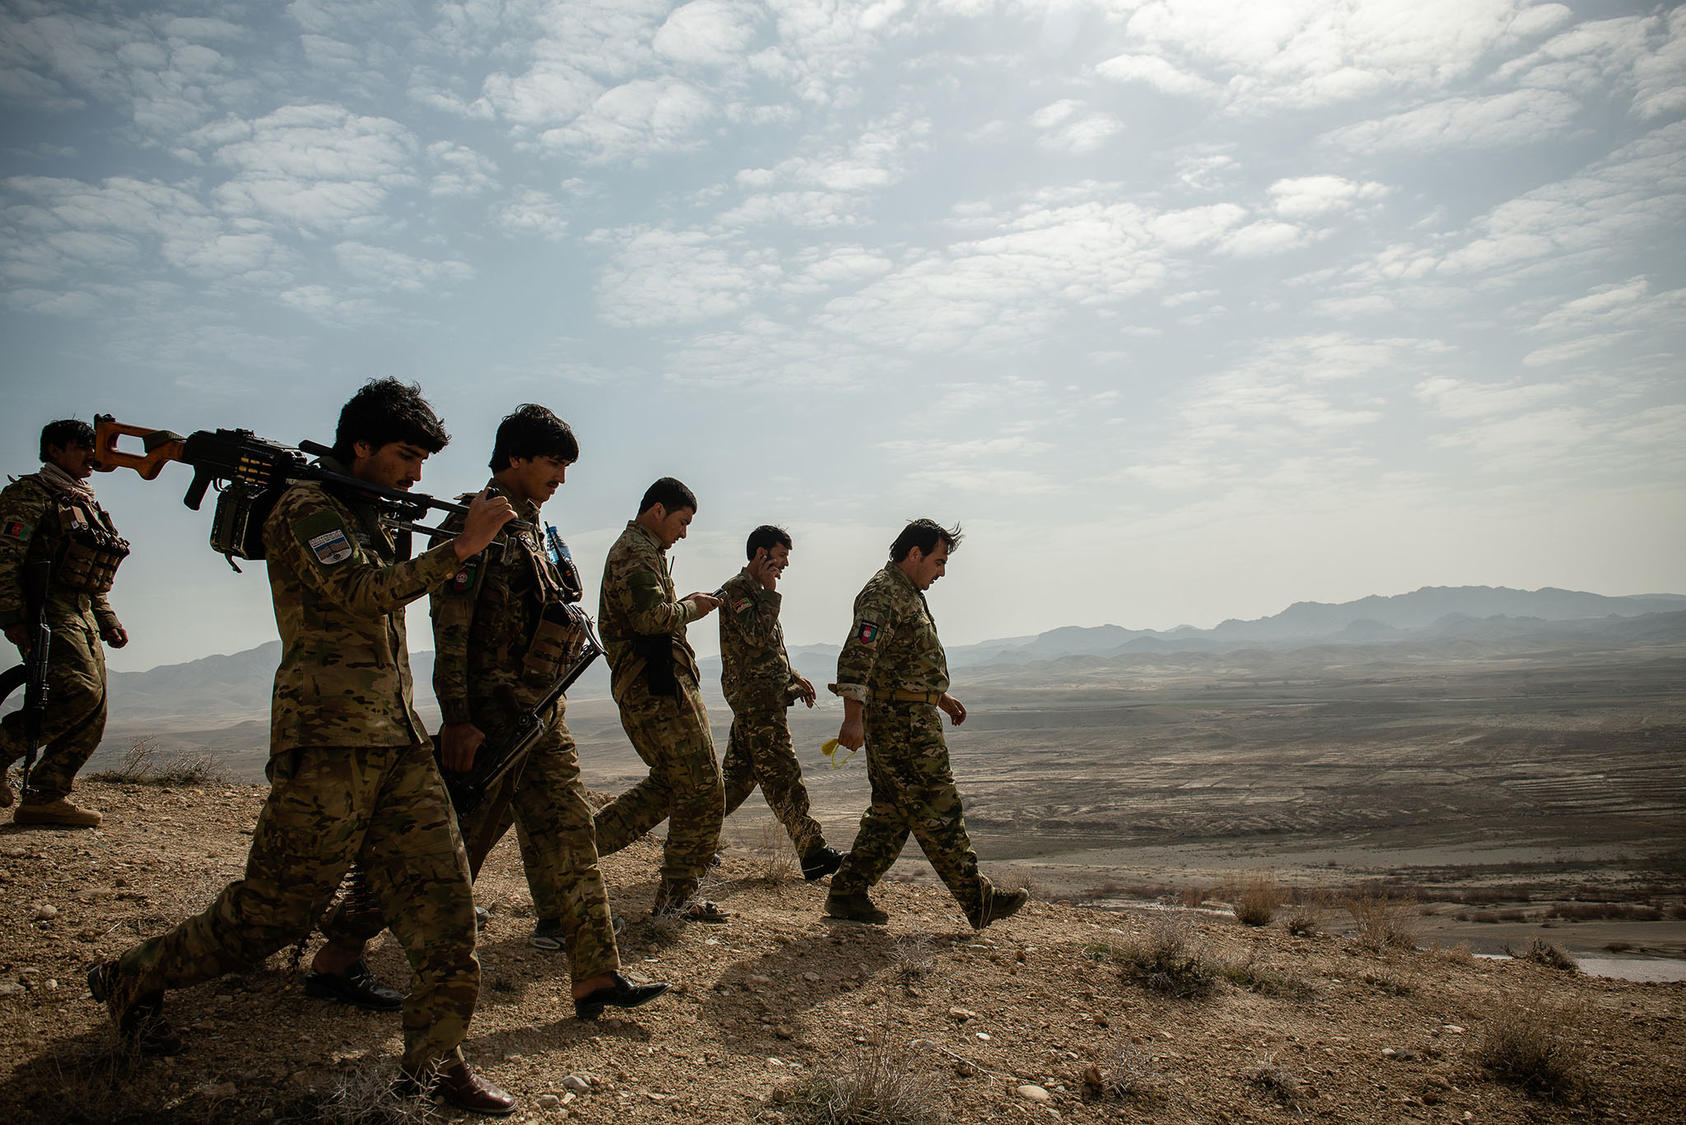 Lt. Col. Musa-Kalim Rodwal, the commander of an Afghan police unit, leads a group of police officers in Zabul Province, in Afghanistan on Sunday, Feb. 23, 2020. (Kiana Hayeri/The New York Times)